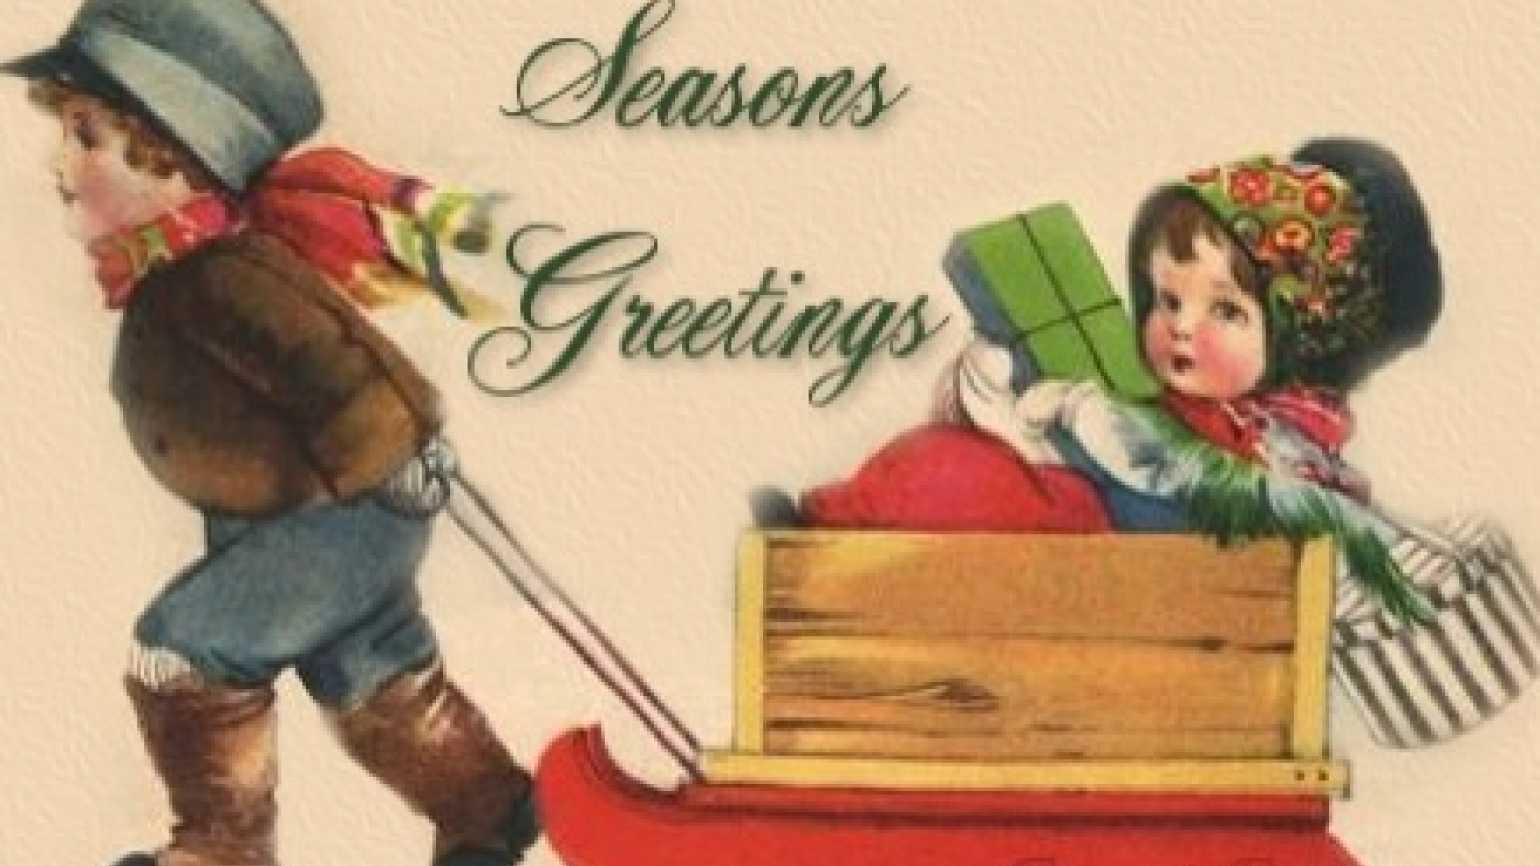 Season's Greetings antique graphic from Weeinspirations.com